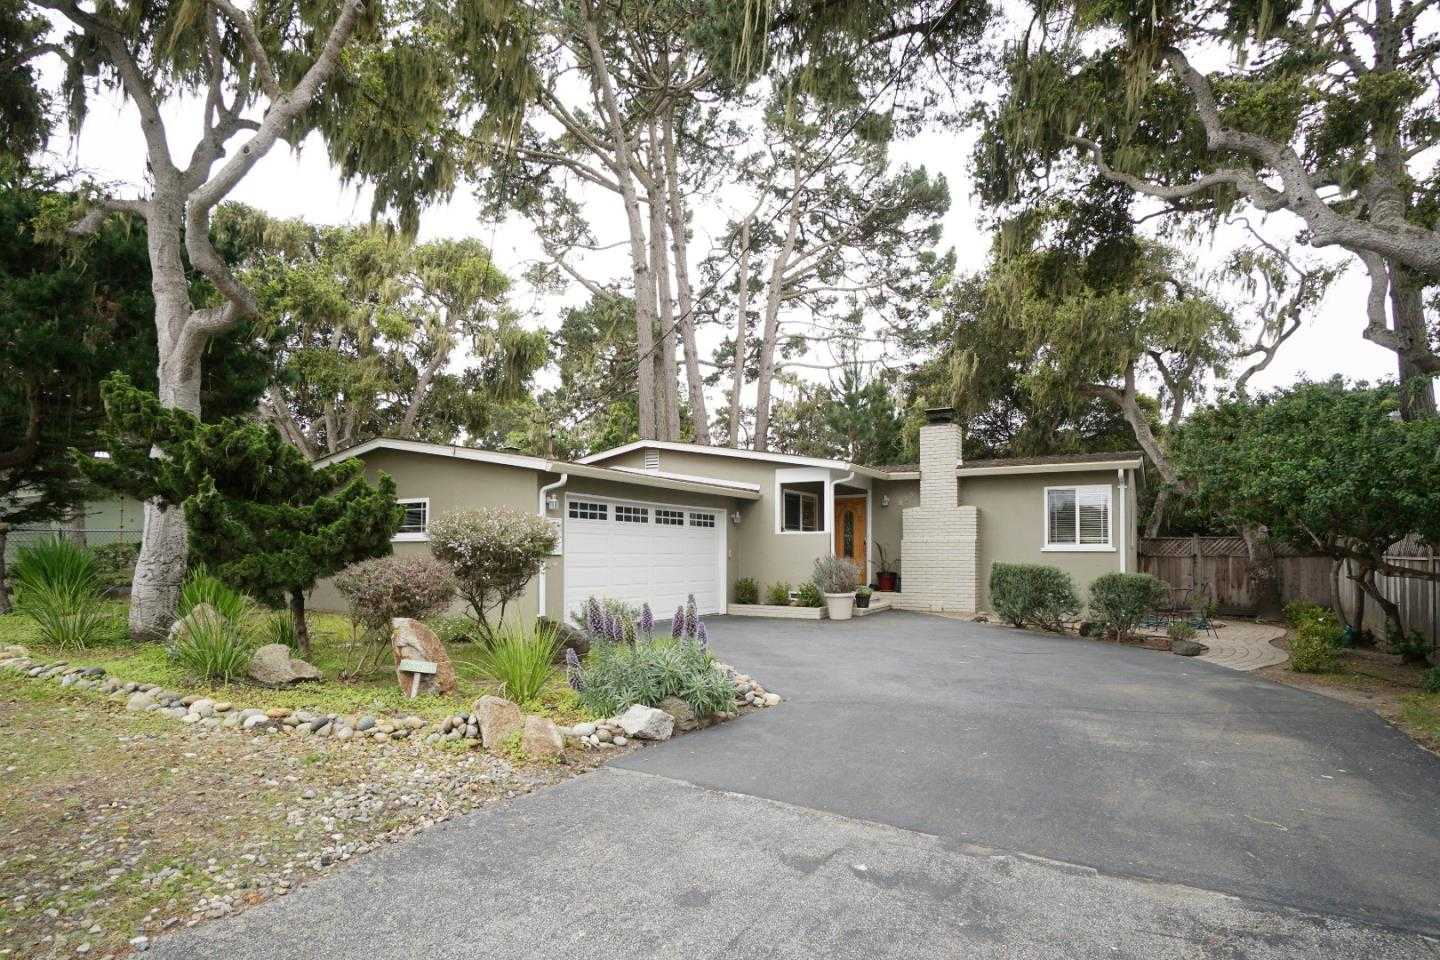 $998,000 - 3Br/2Ba -  for Sale in Pacific Grove